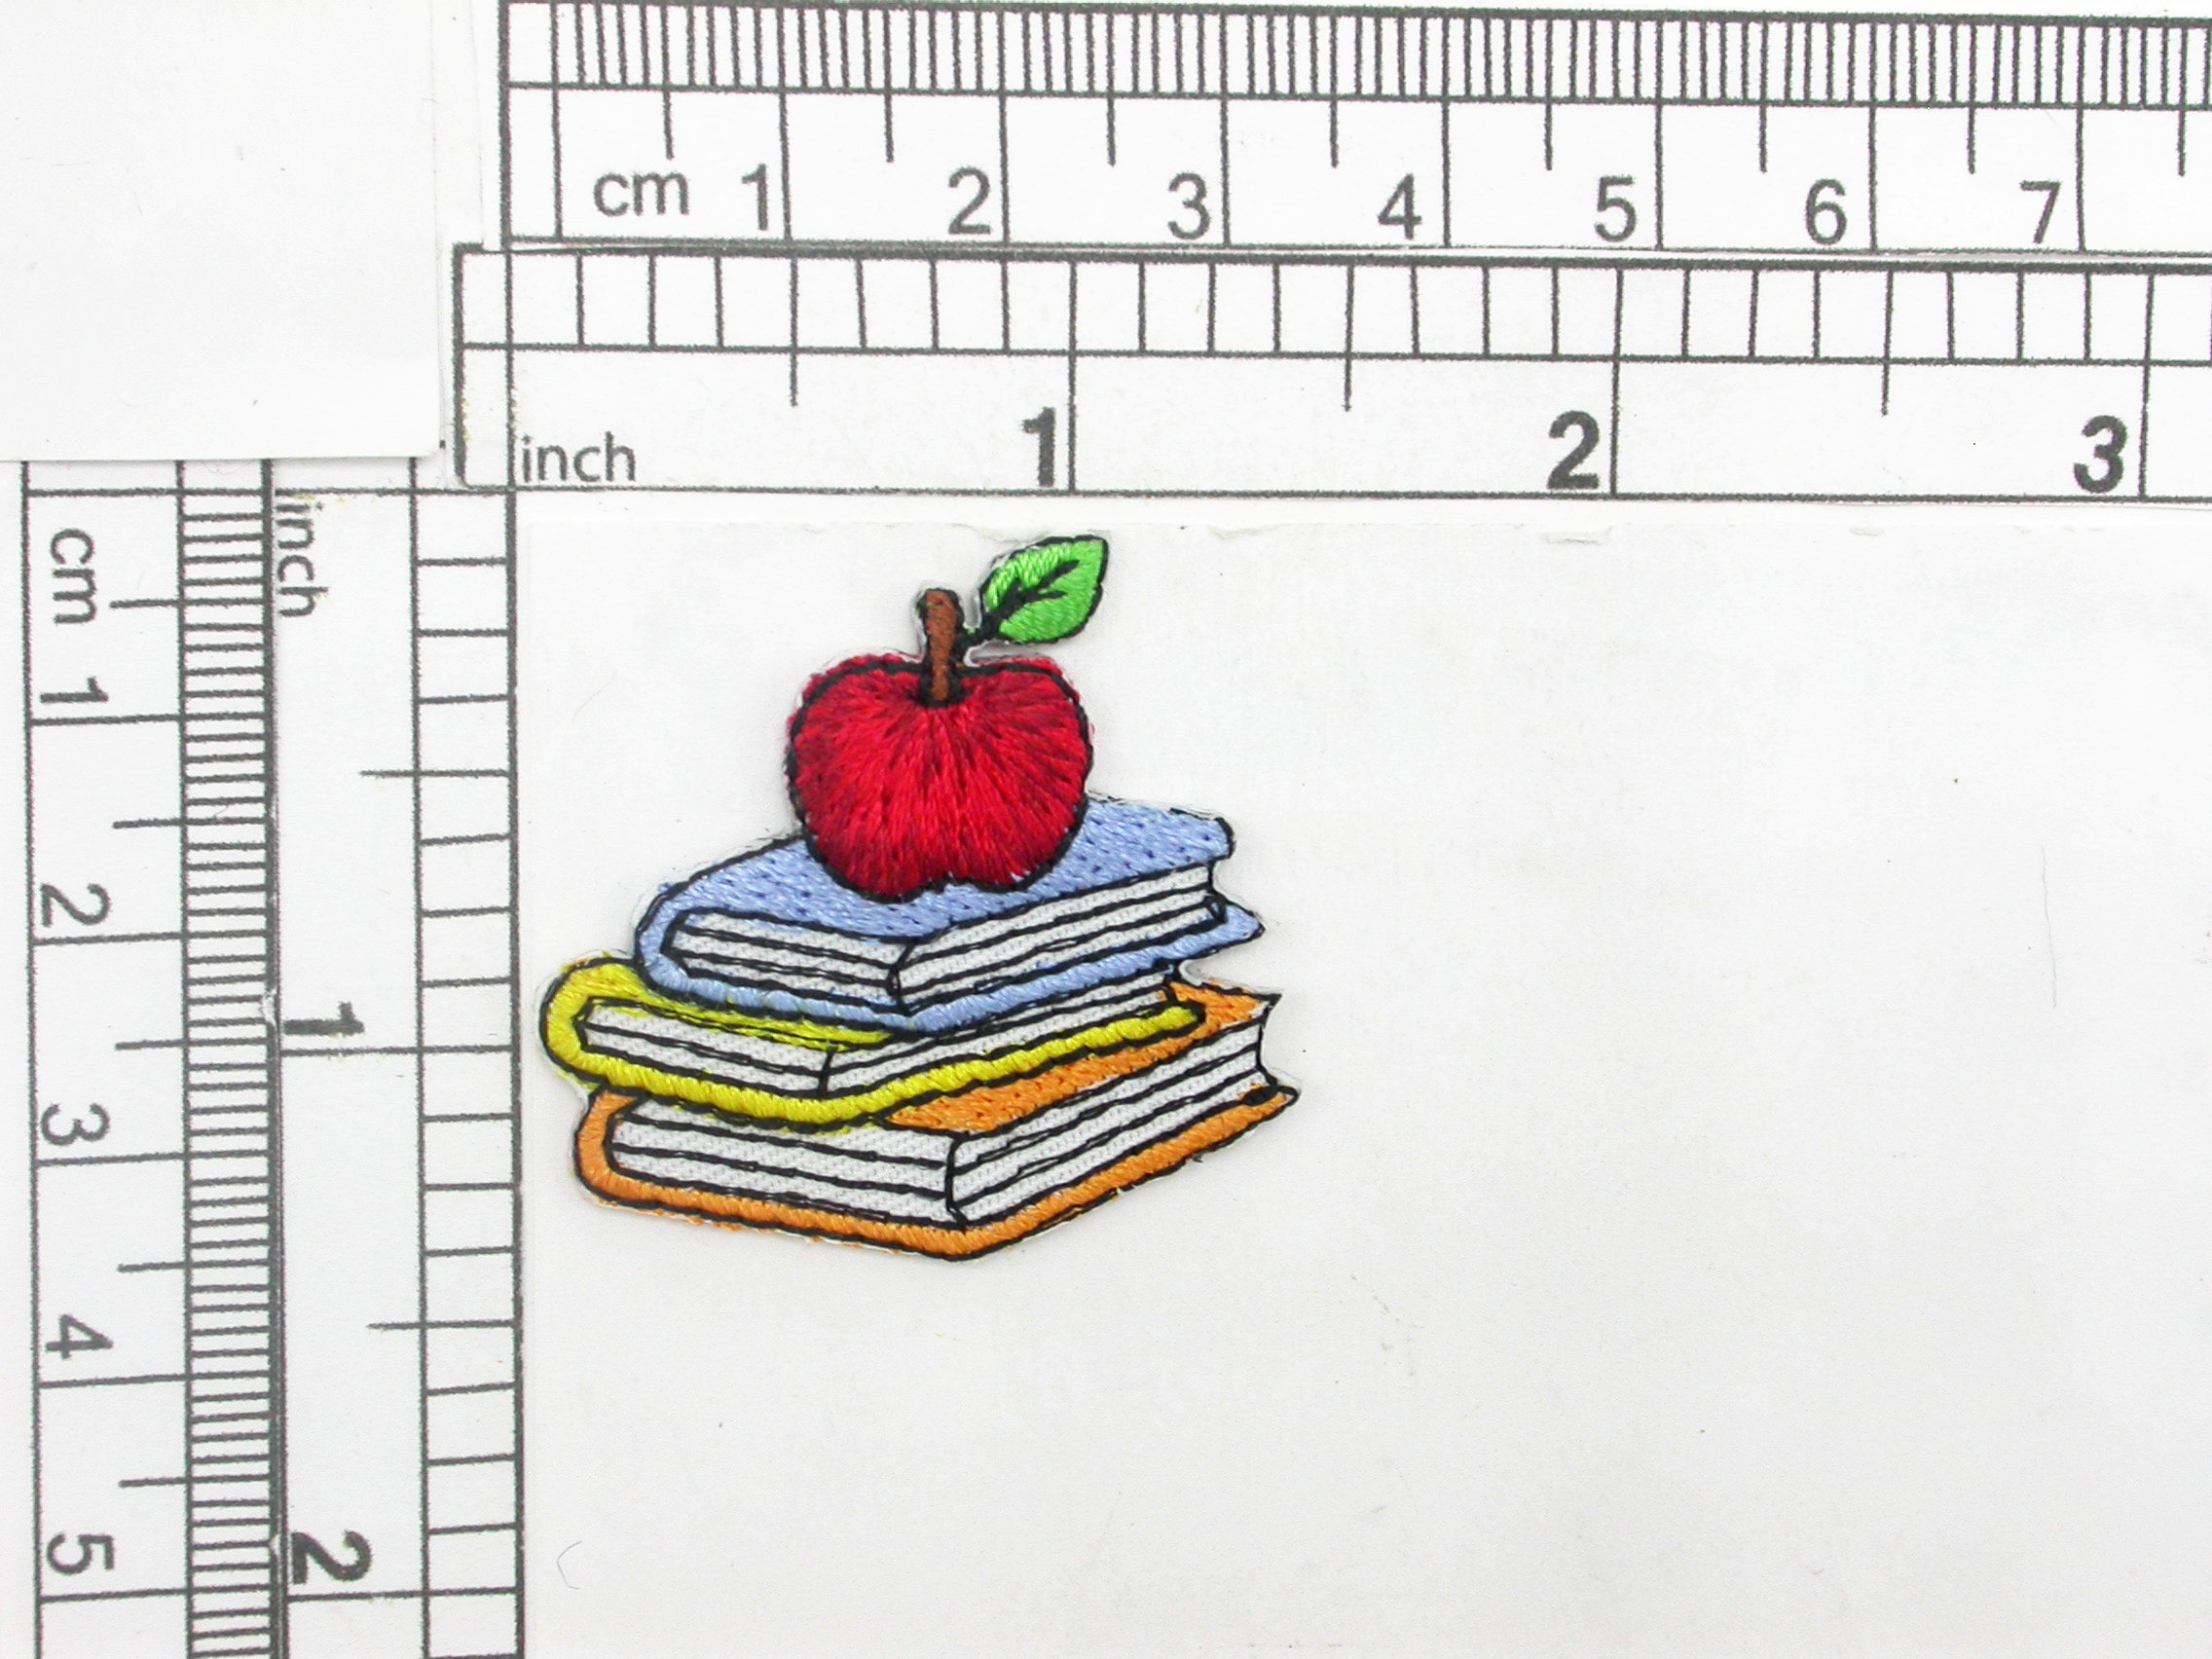 """School  Books & Apple Iron On Patch Applique    Embroidered on White Backing   Measures 1 3/8"""" high x 1 3/8"""" wide approximately"""